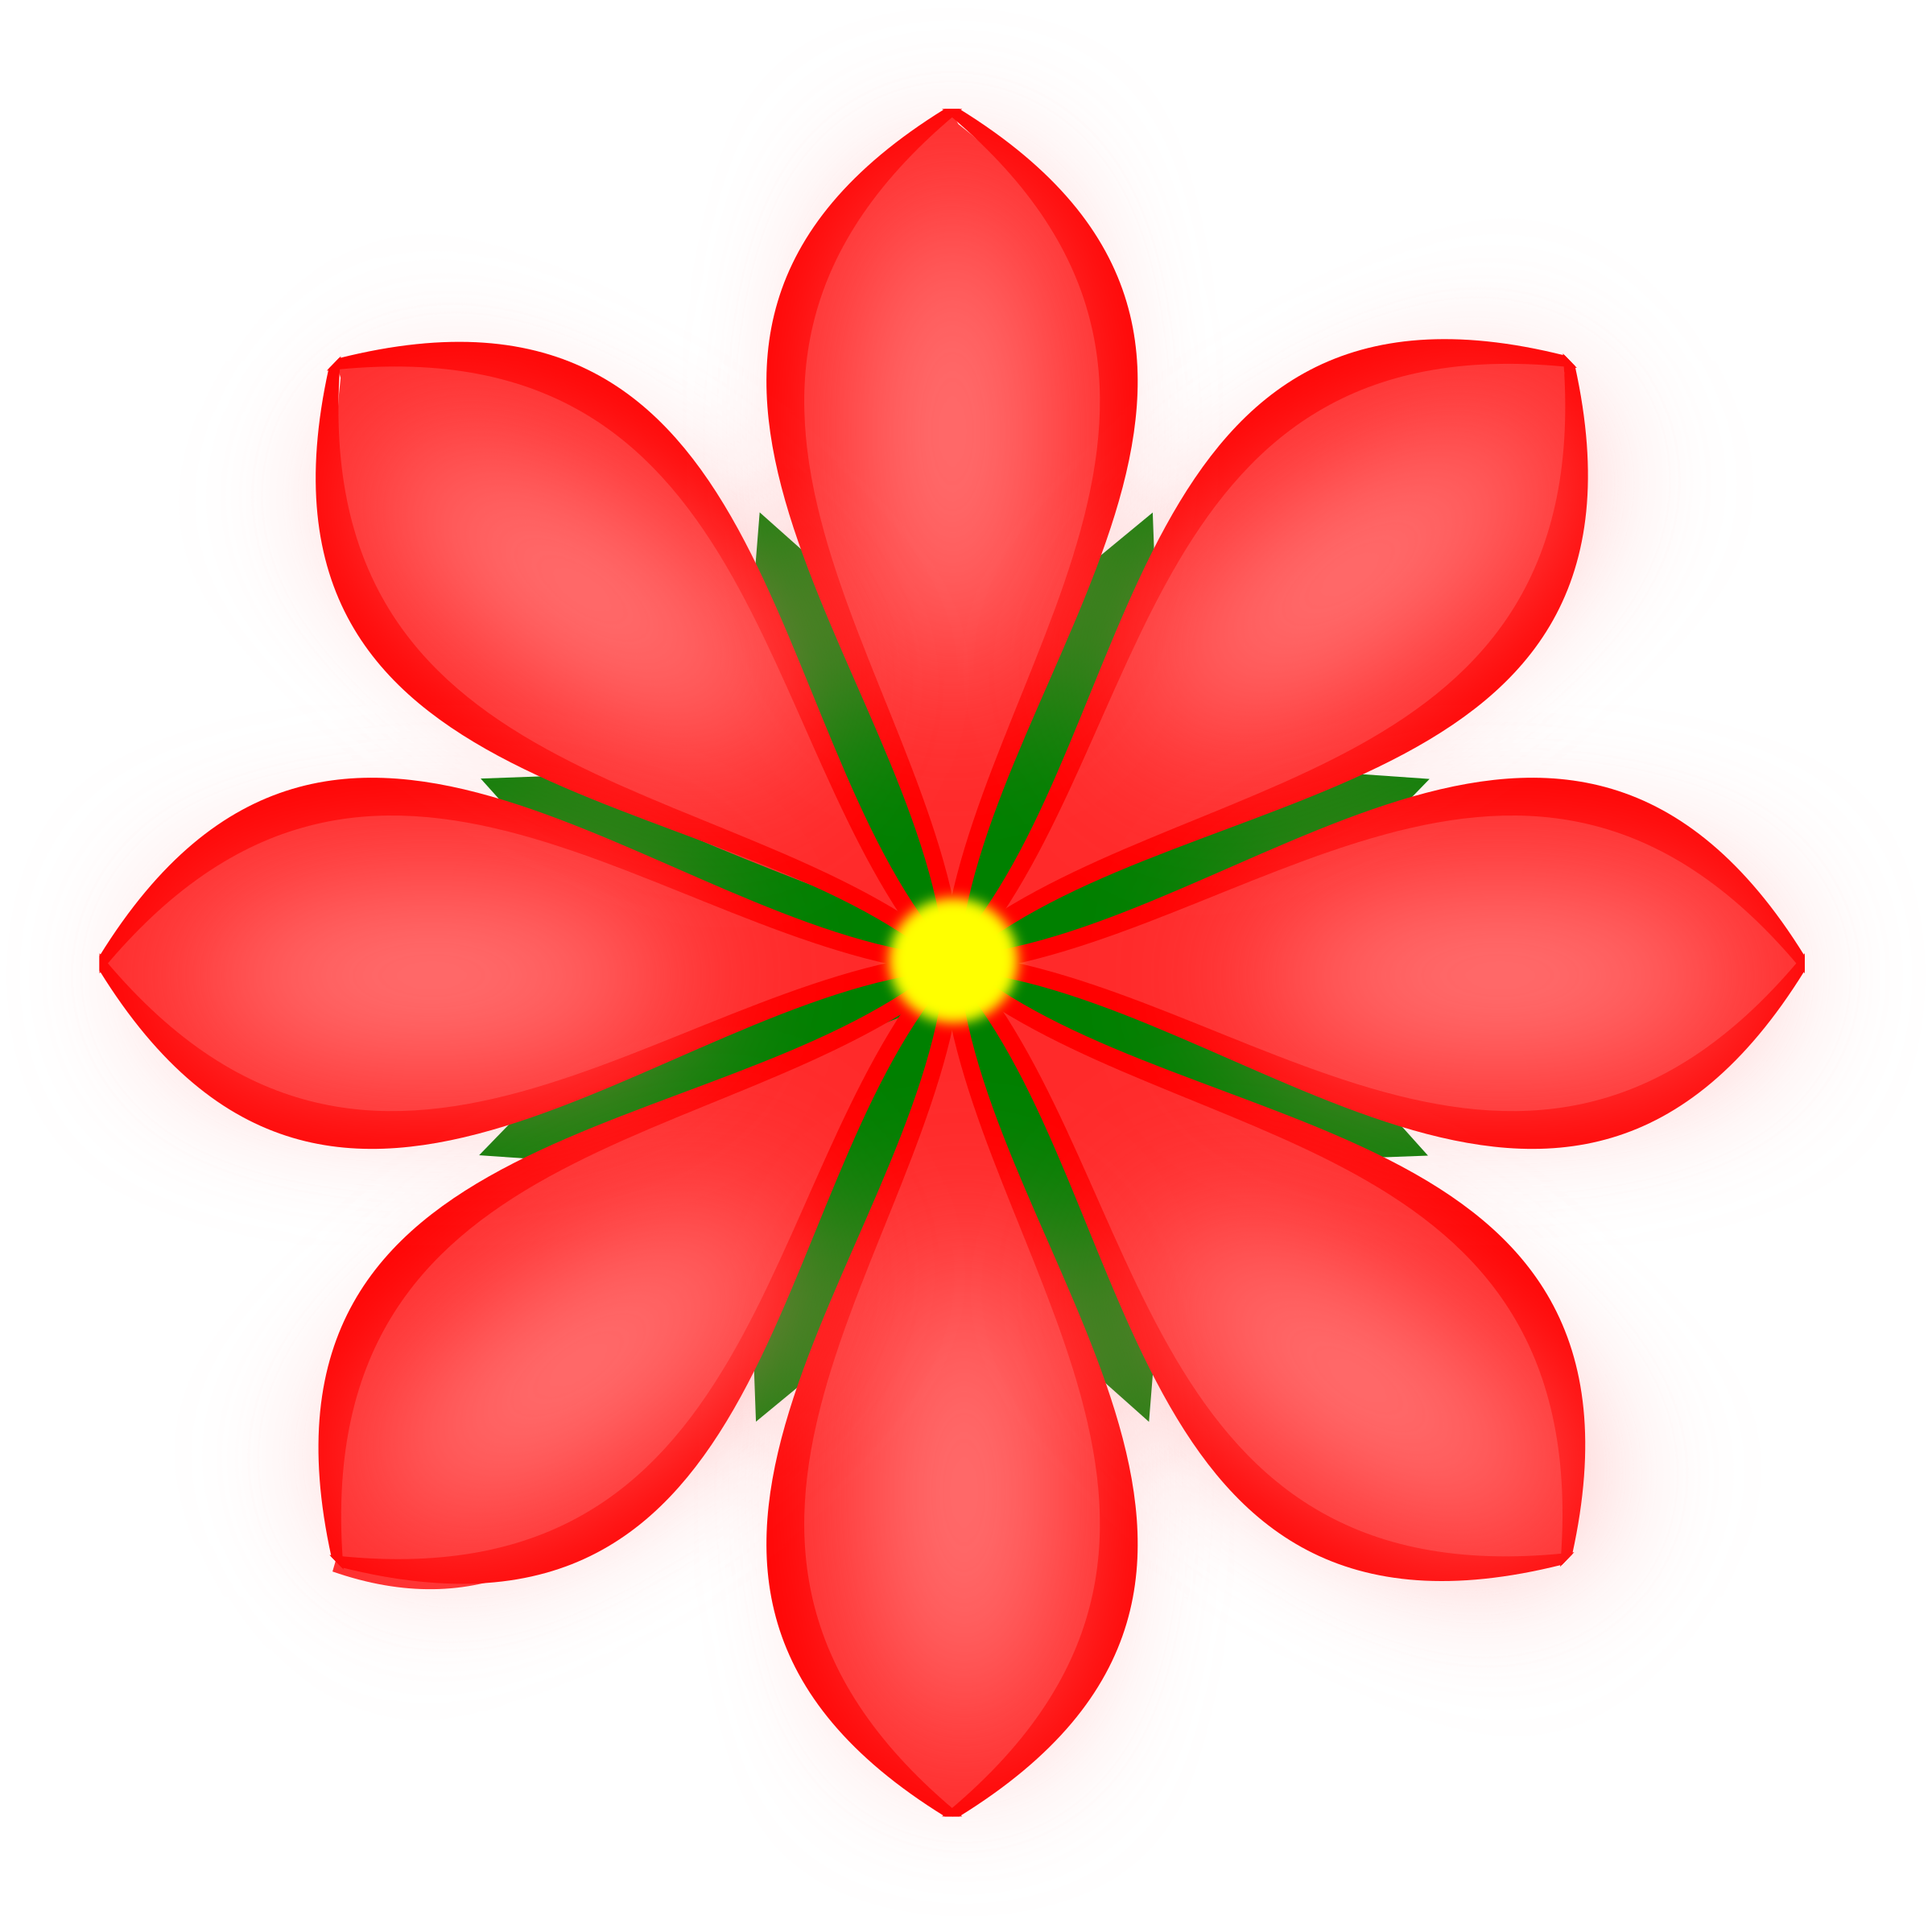 Red flower clipart banner free stock Clipart - red flower banner free stock